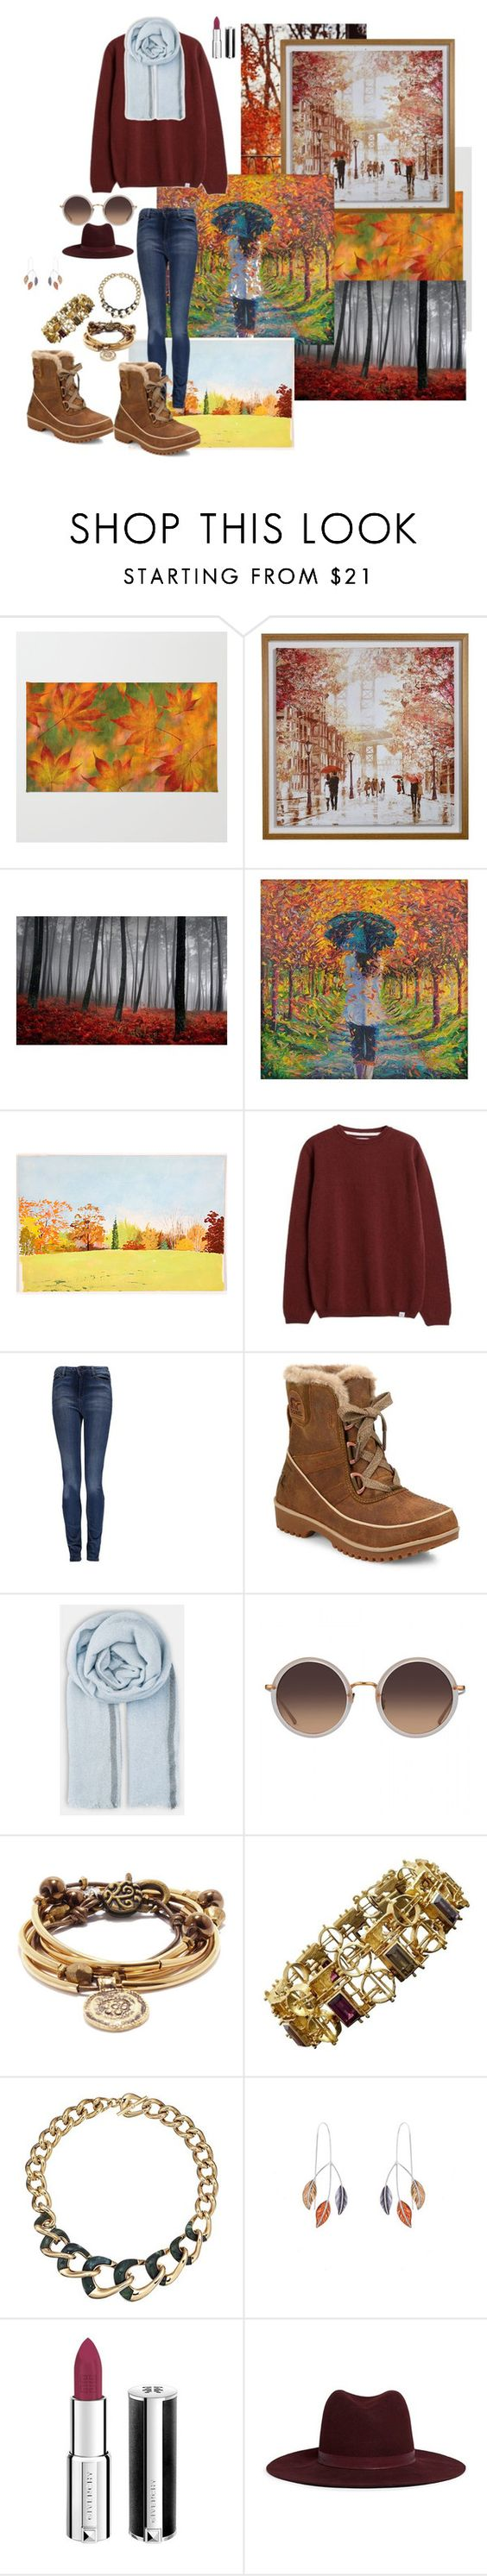 """""""Autumn Or Fall...We See It All"""" by miss-countryside ❤ liked on Polyvore featuring Art for Life, Norse Projects, Vero Moda, SOREL, BeckSöndergaard, Lizzy James, Michael Kors, Caroline Royal, Givenchy and Janessa Leone"""